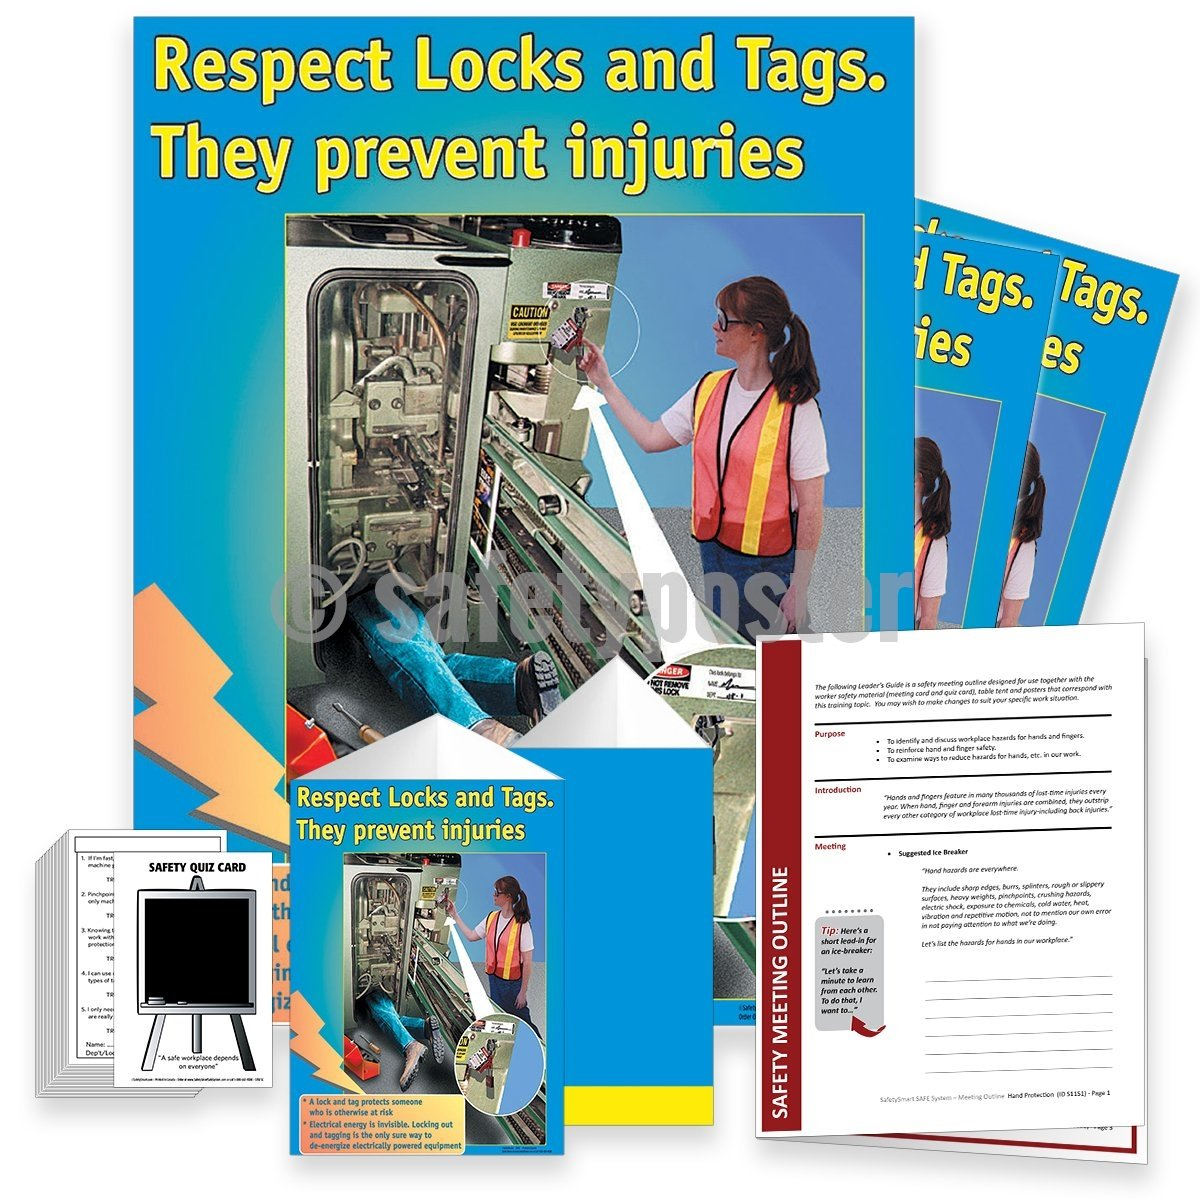 Safety Meeting Kit - Respect Locks And Tags They Prevent Injury